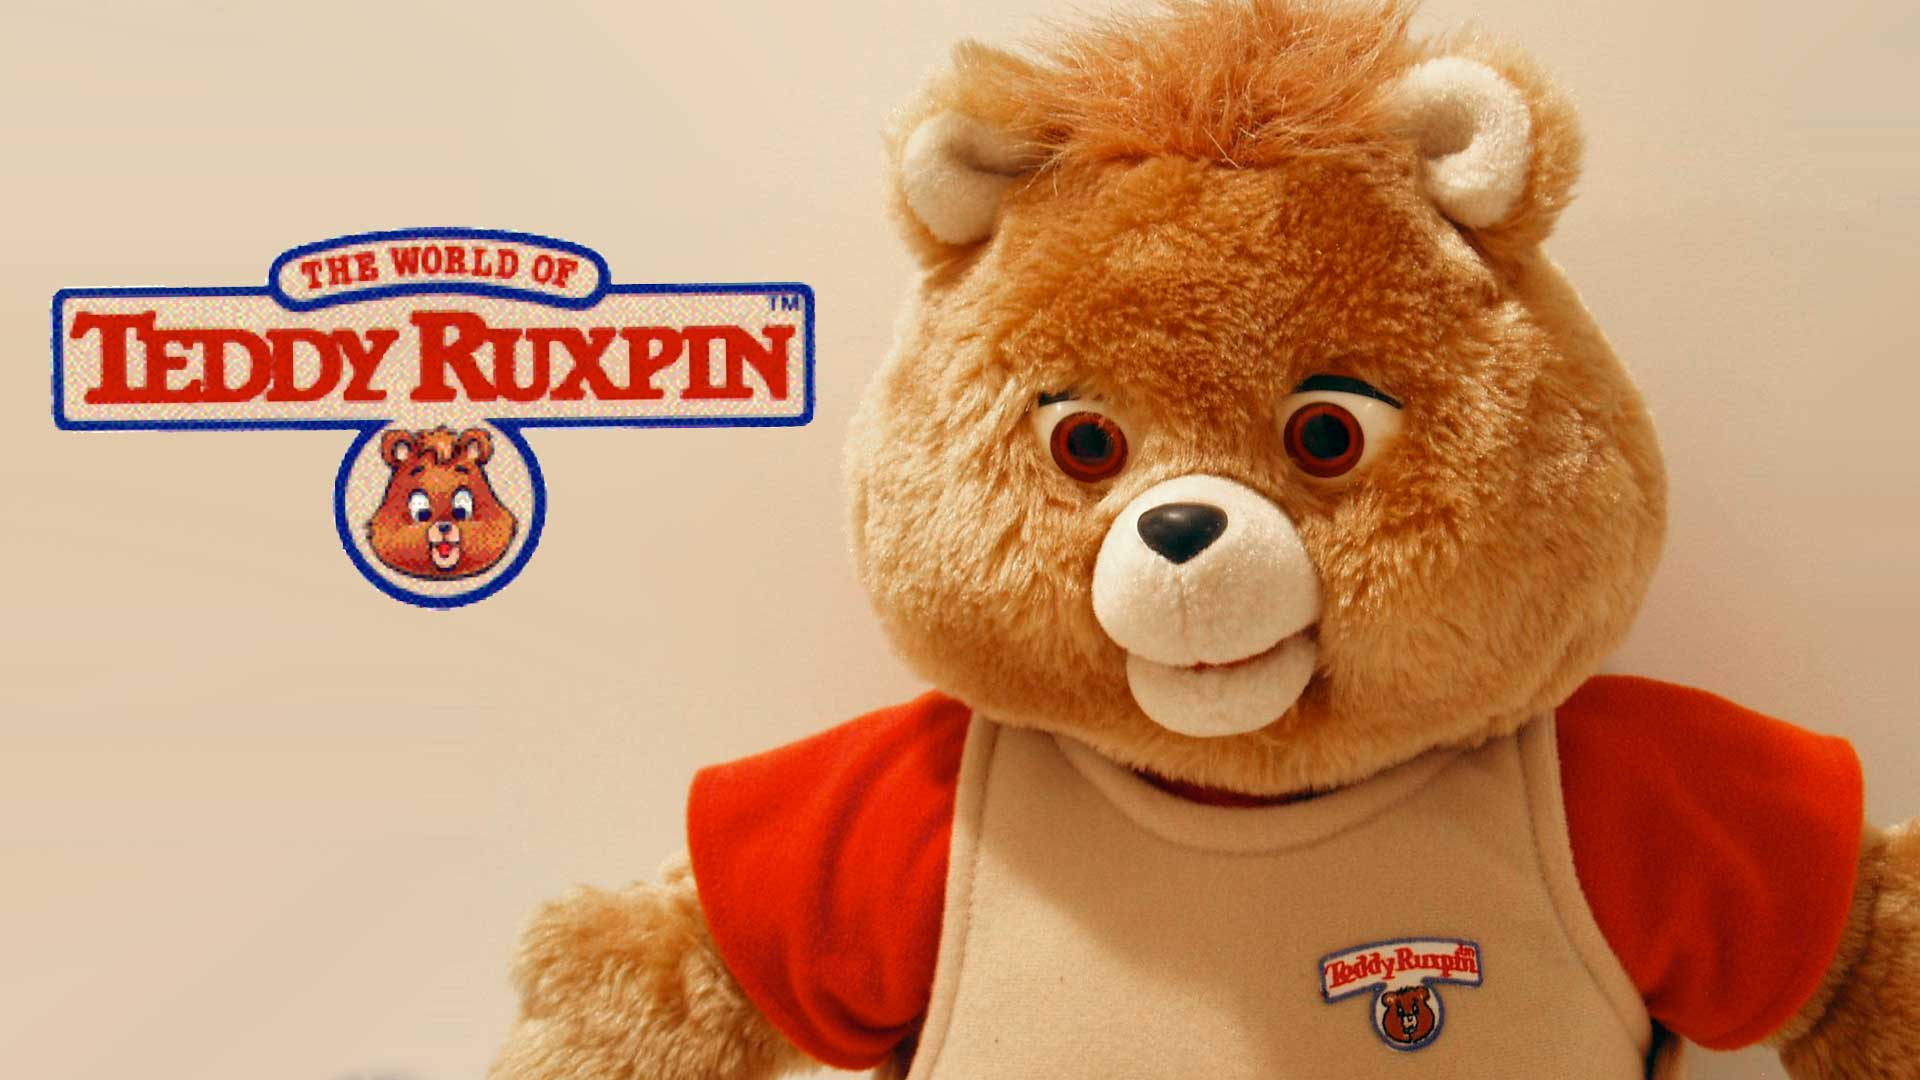 teddy-ruxpin-feature.jpg